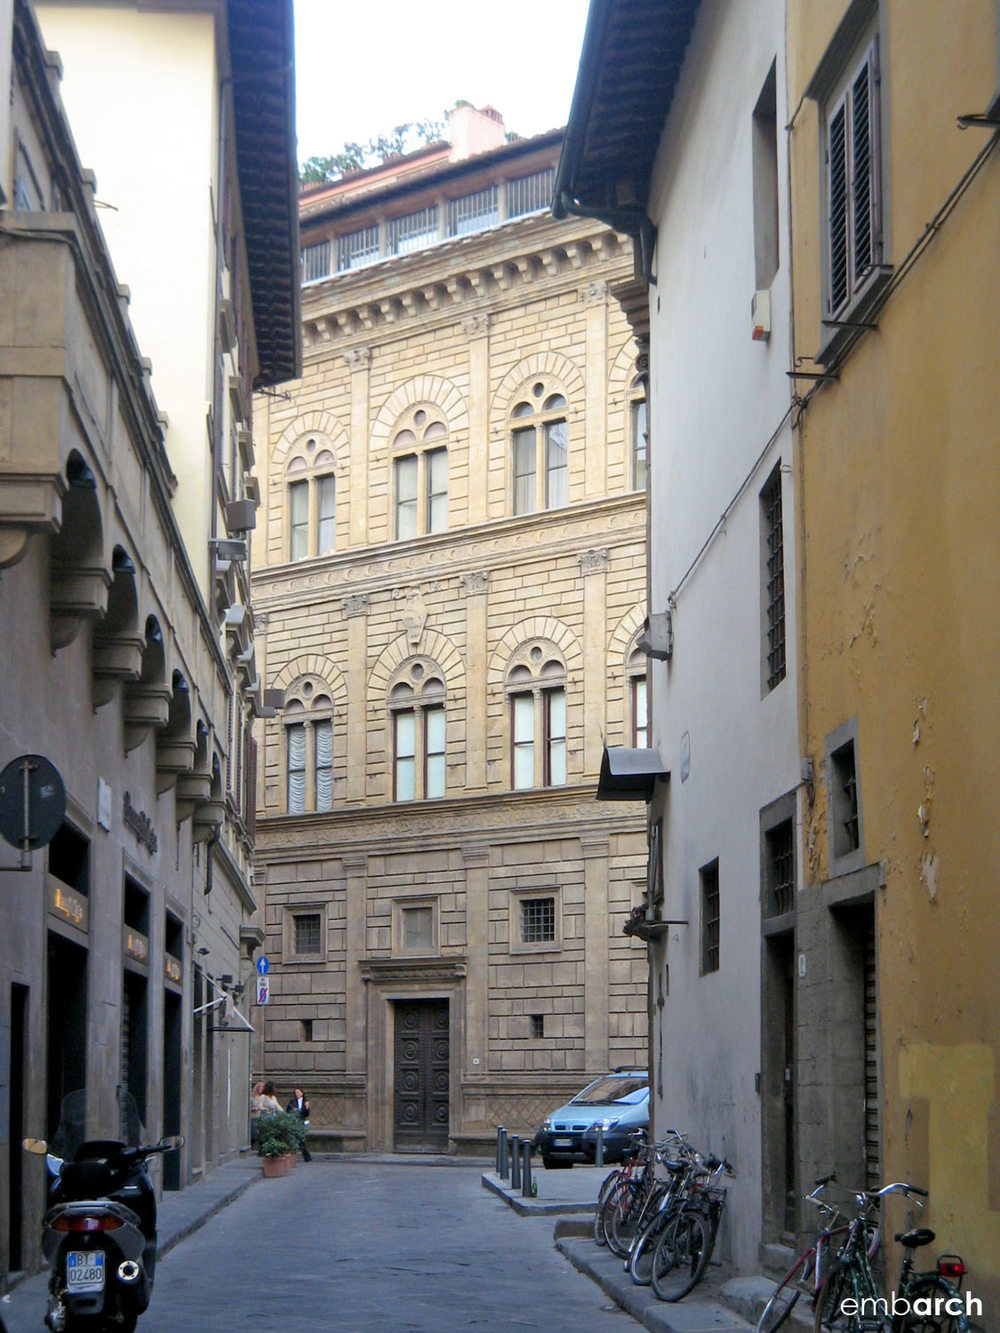 Palazzo Rucellai - view of exterior